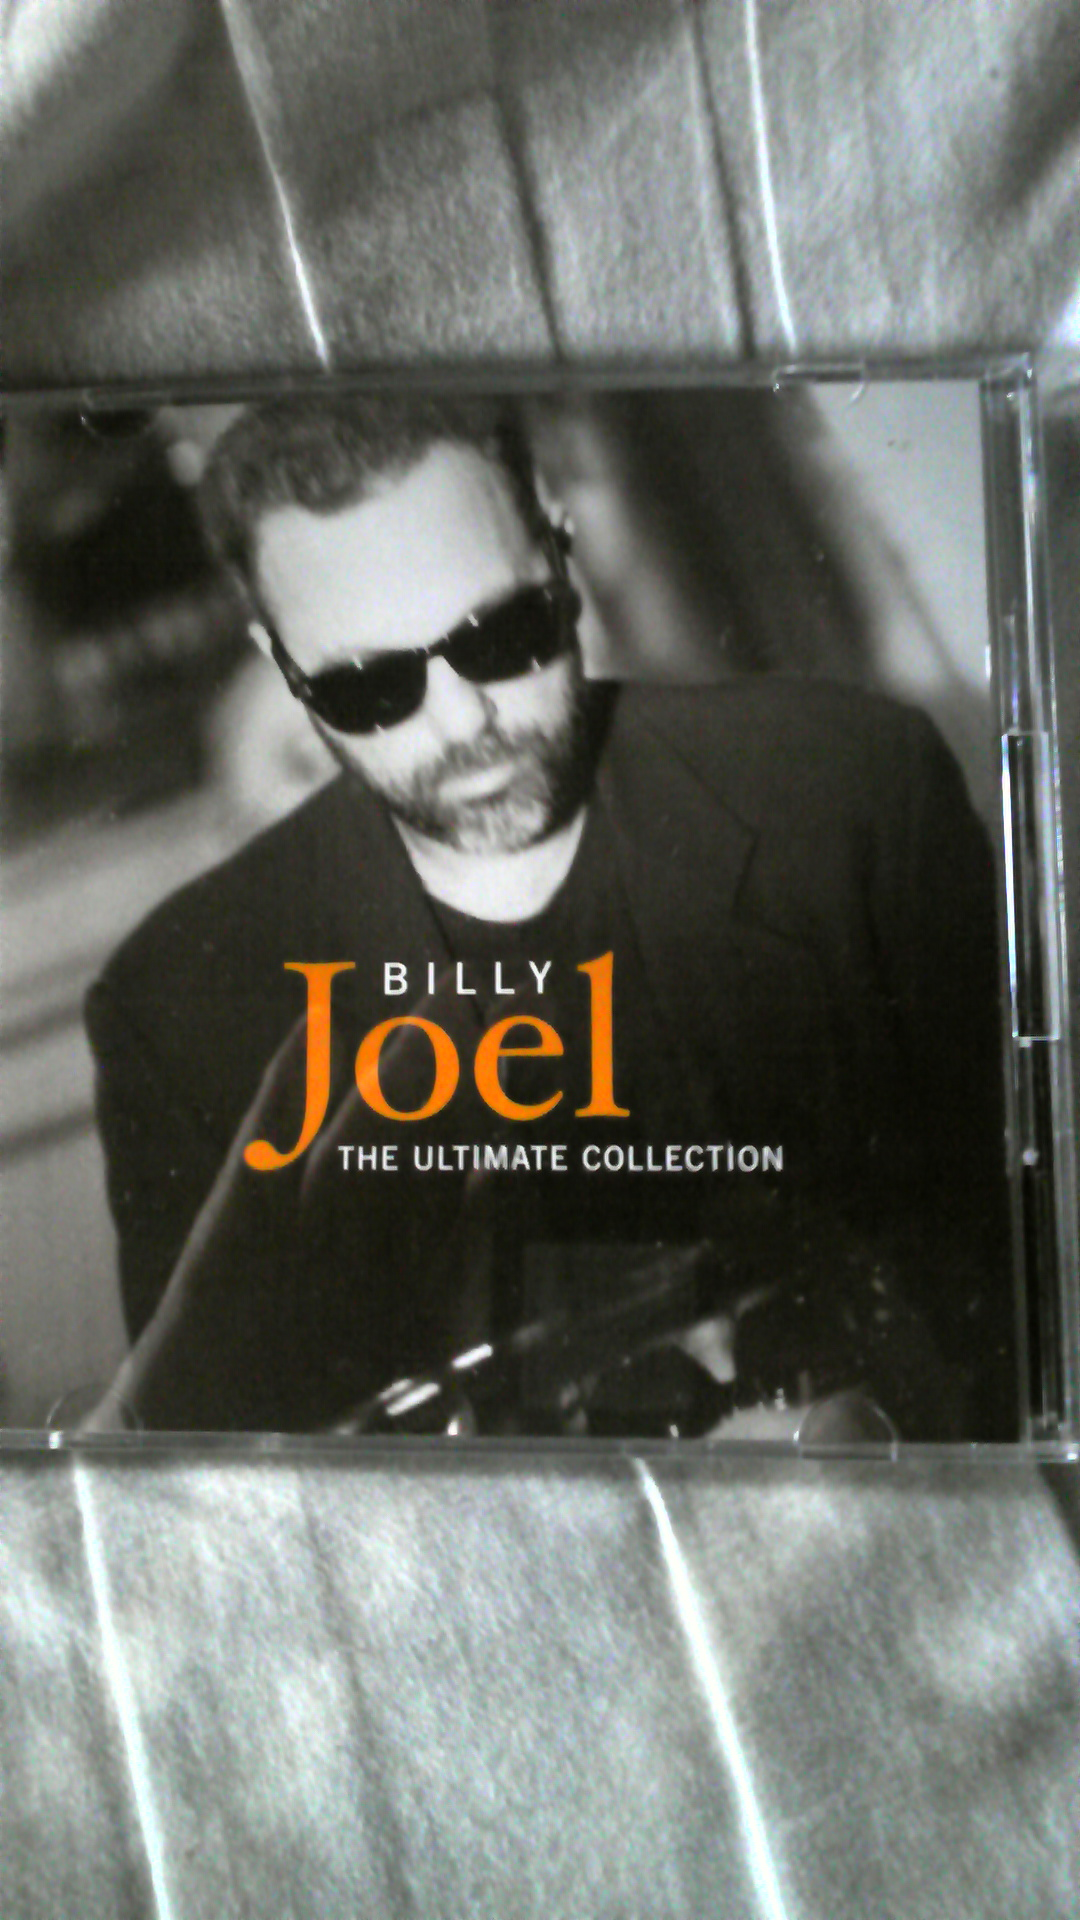 Billy Joel Ultimate Collection: Anarogrosuresのblog : BILLY JOEL/THE ULTIMATE COLLECTION 2CD